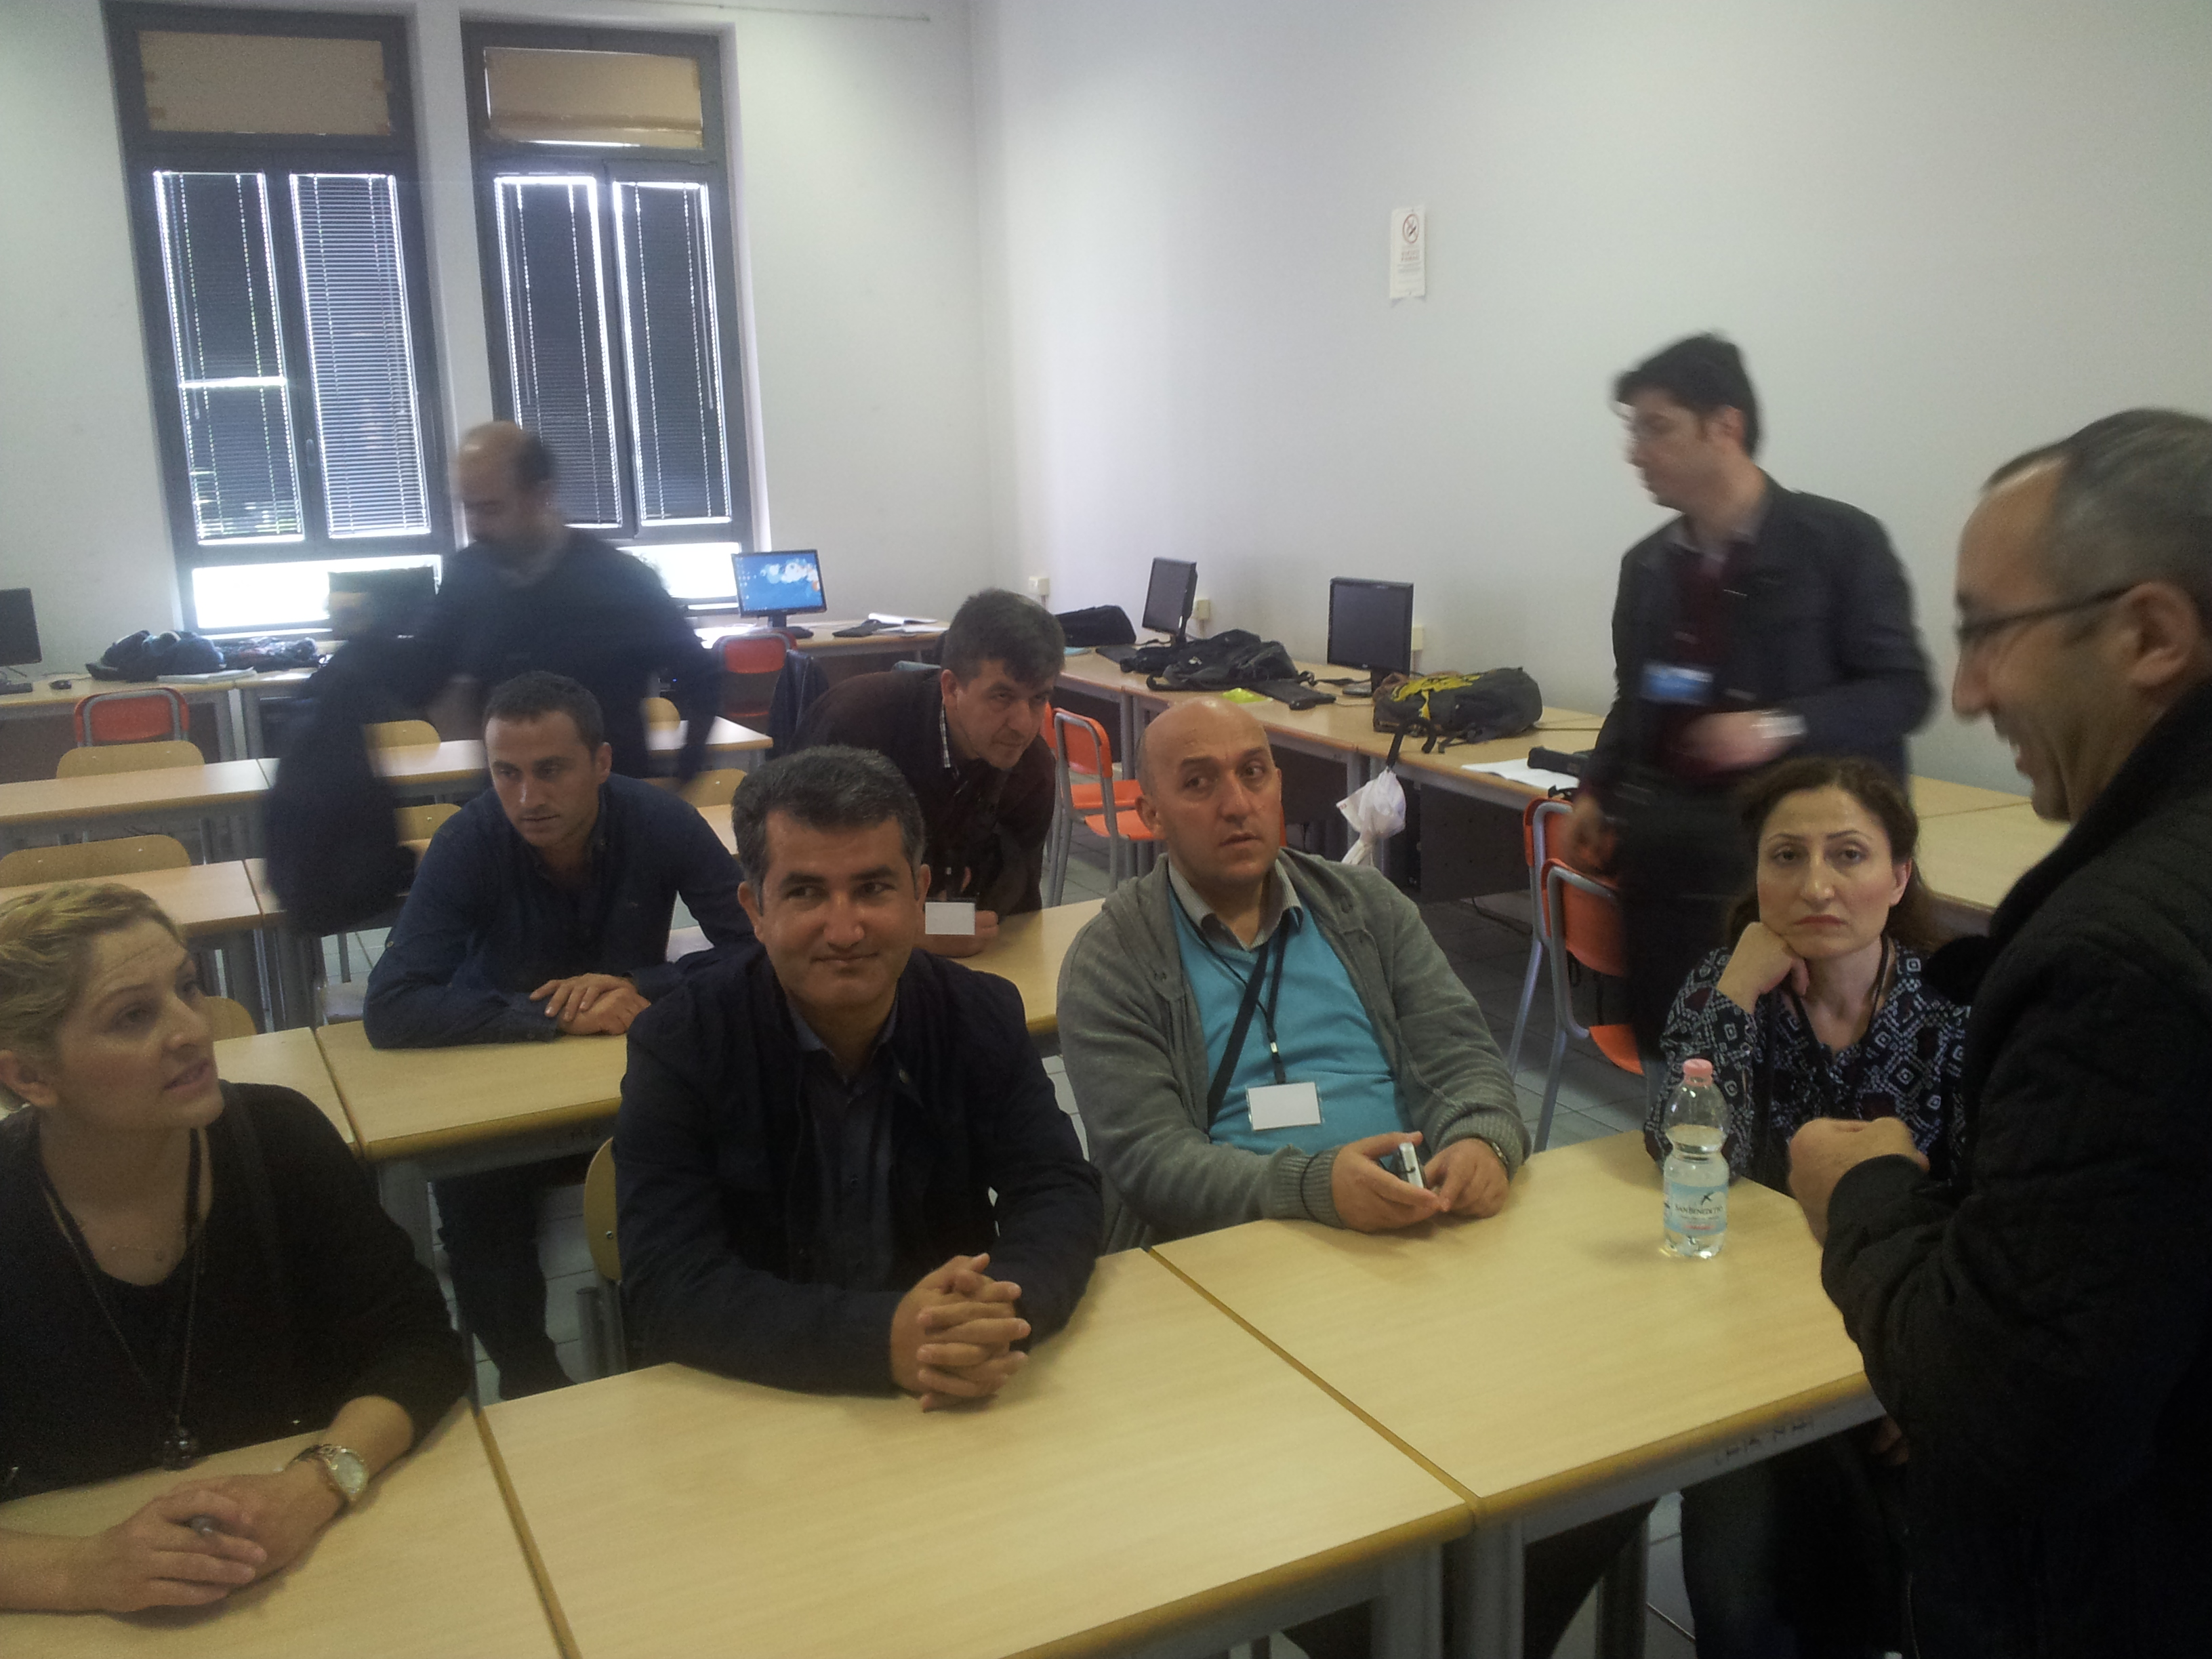 Erasmus plus training course : Effective Use of ICT in Education